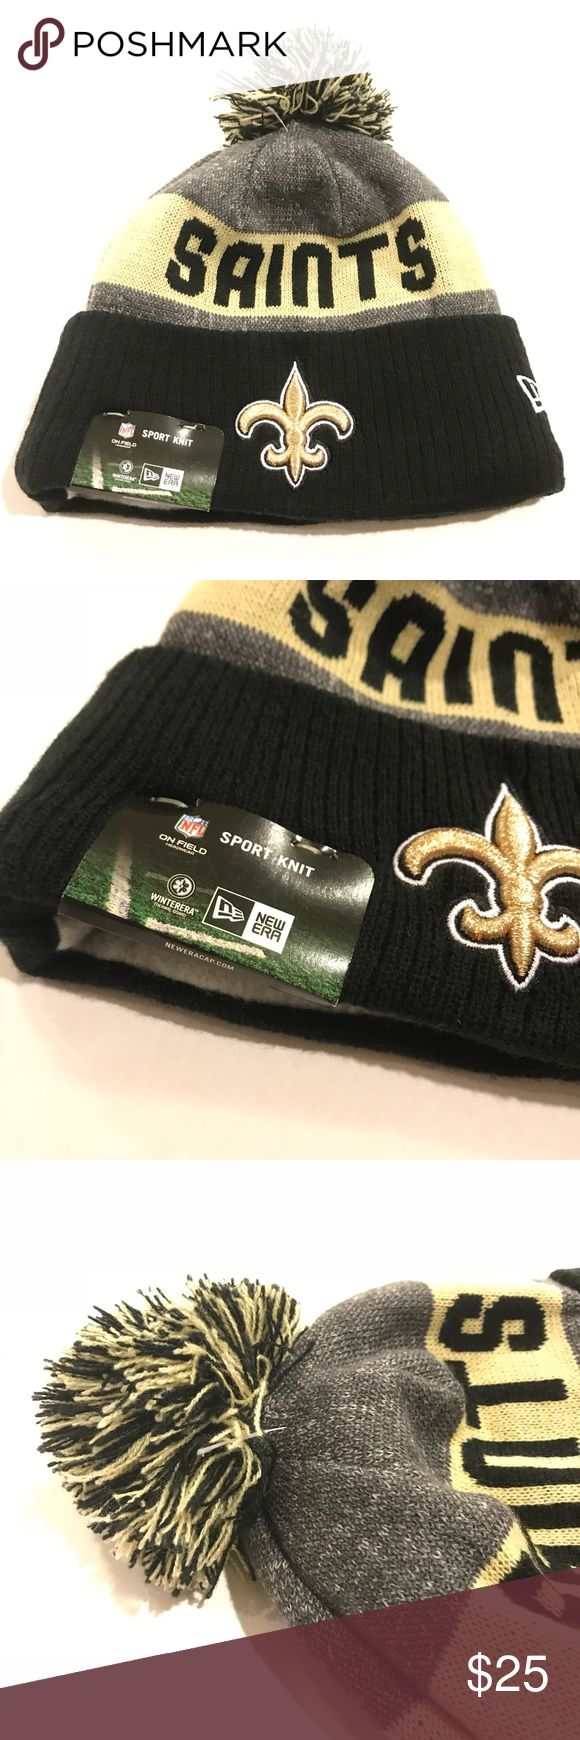 New Orleans Saints knit Beanie one size fits most NWT Never worn  One size fits most New Era Accessories Hats